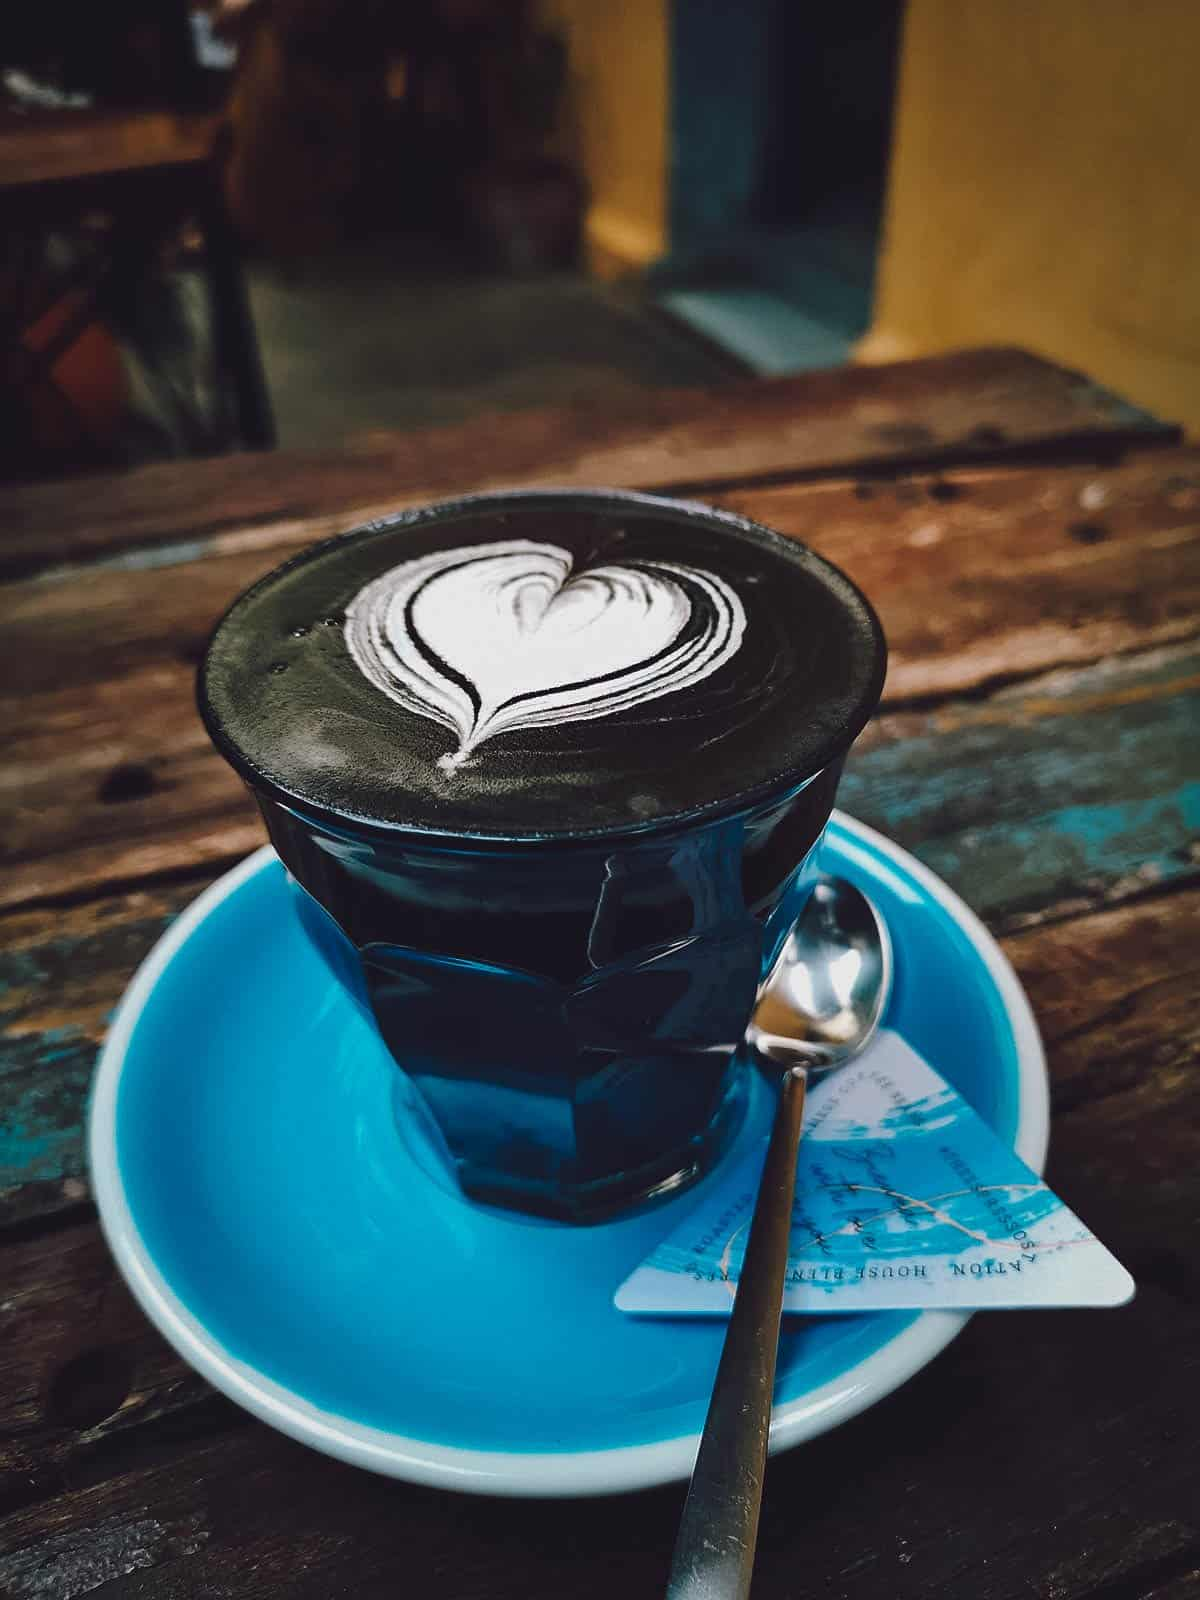 Dark Soul Latte at The Espresso Station in Hoi An, Vietnam